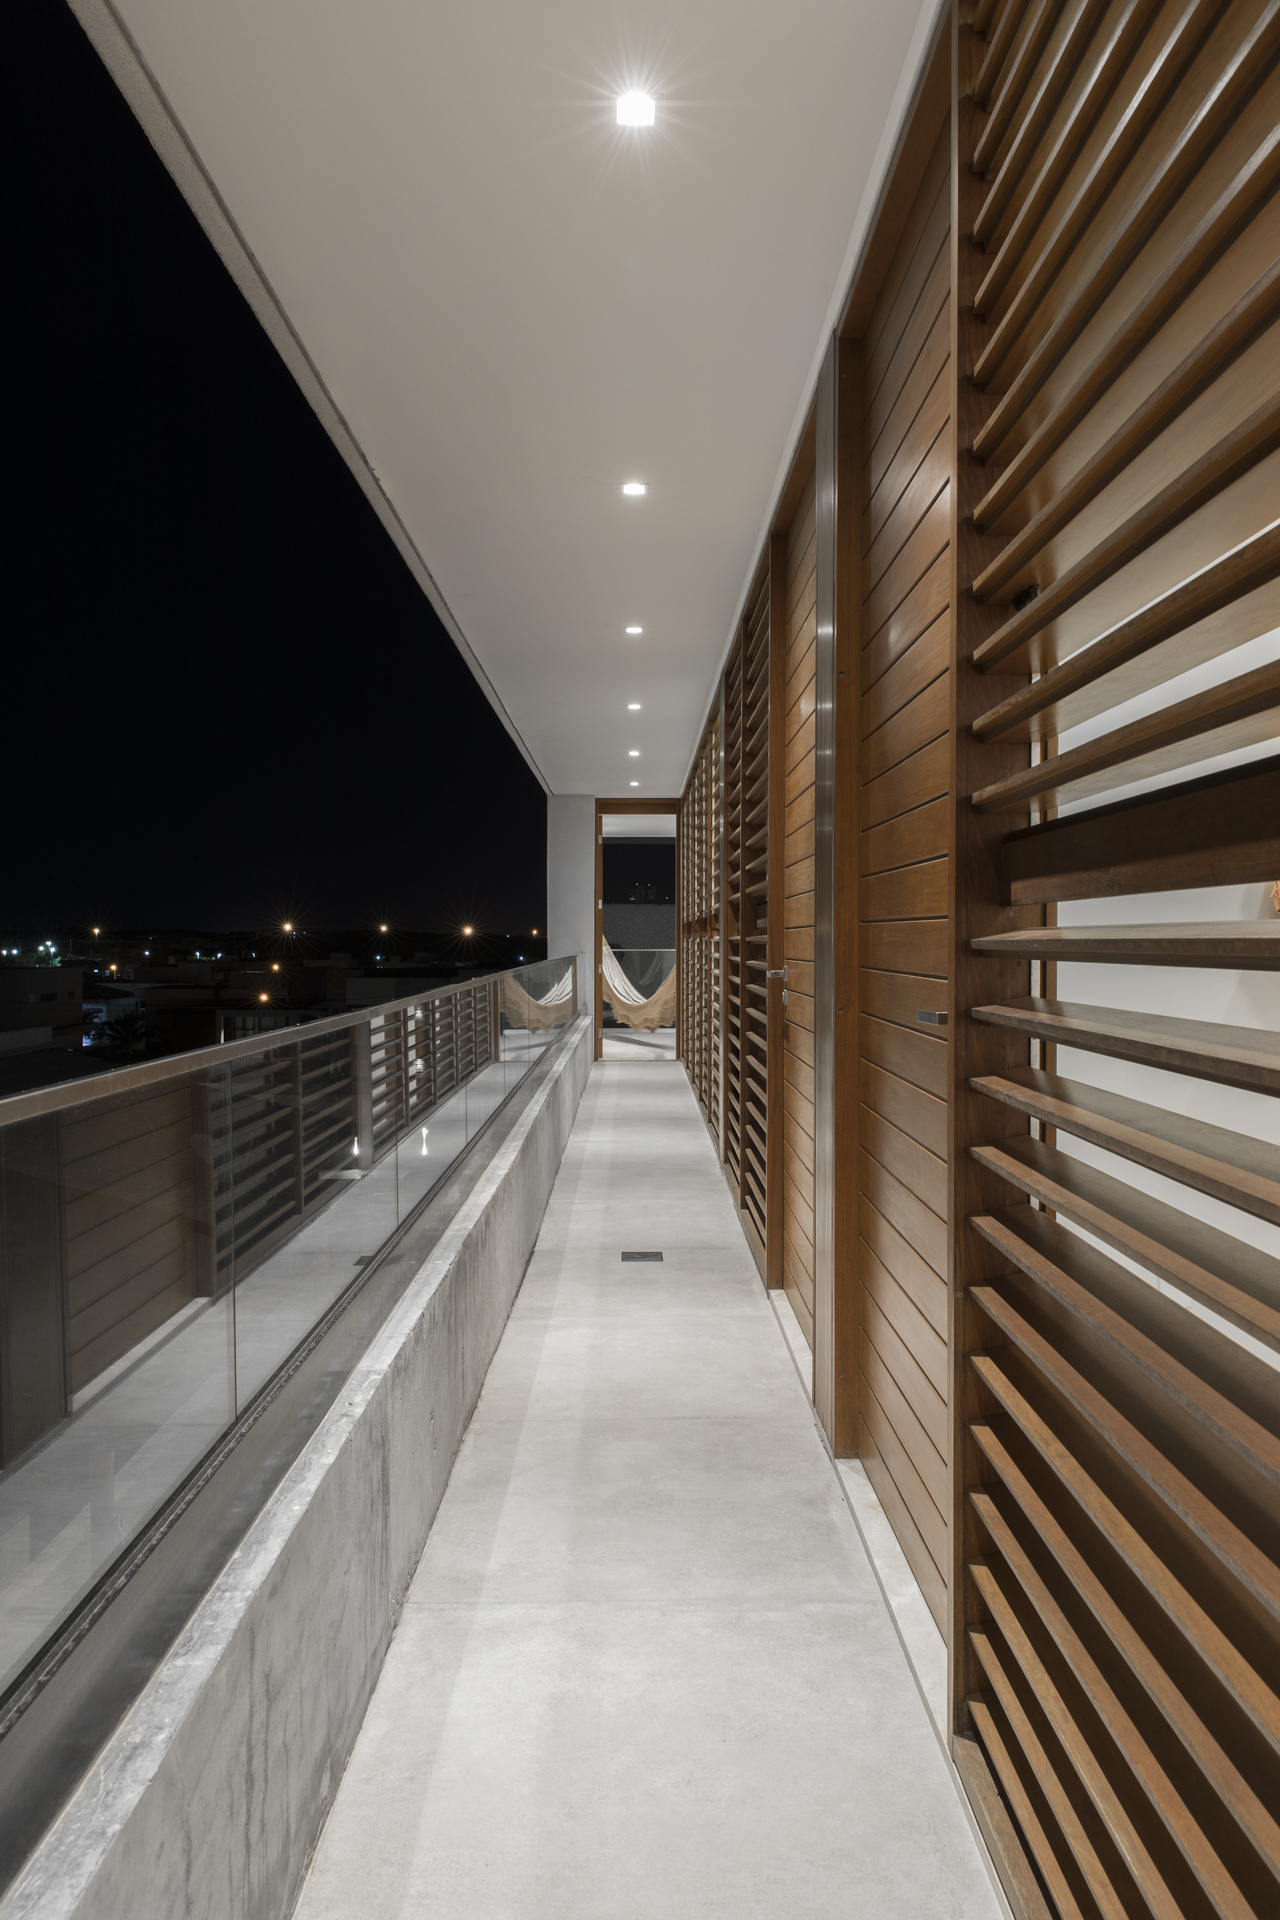 33_CASA_IF_-_Martins_Lucena_Arquitetos-36.jpg